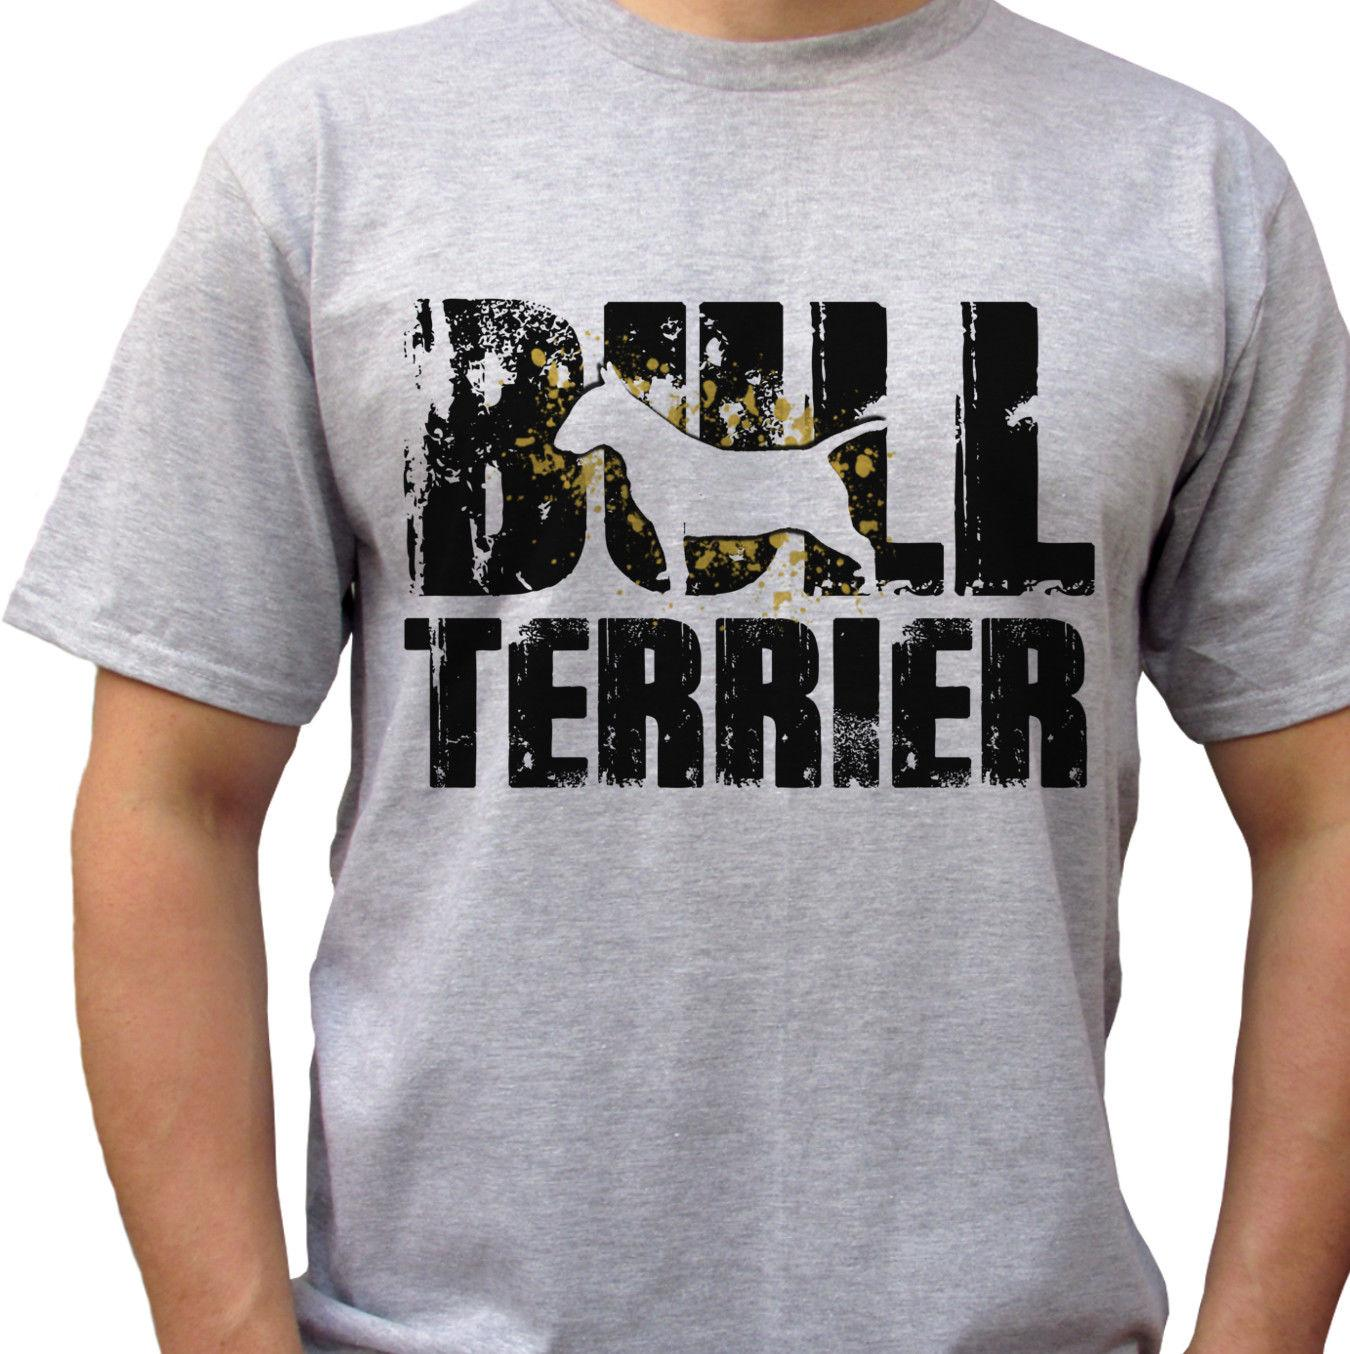 73f12506 Bull Terrier Logo Grey T Shirt Top Tee Dog Design Mens SizesFunny Unisex  Casual Top Design Your T Shirt Personalized T Shirt From  Afterlightclothing, ...